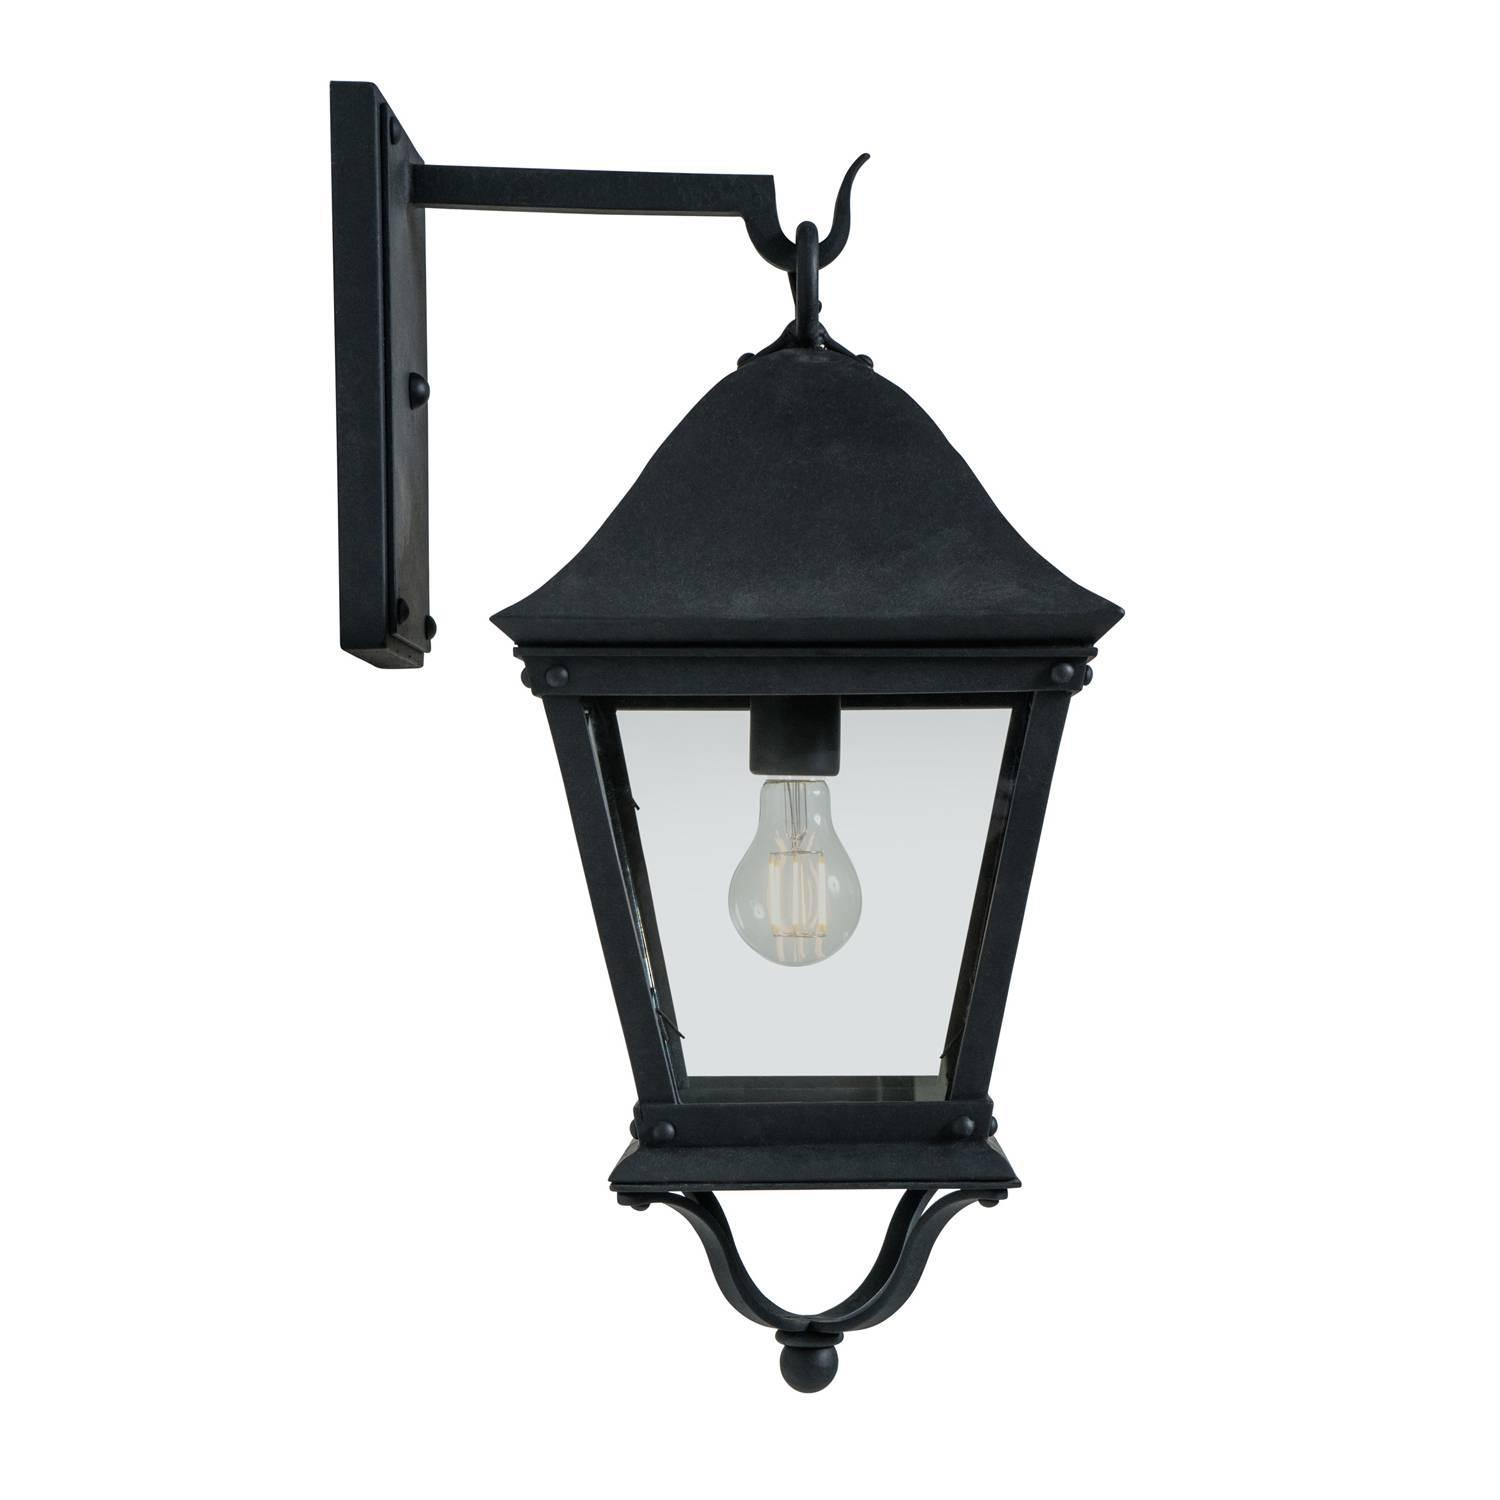 Classic Spanish Colonial Exterior, Outdoor Wrought Iron ... on Wrought Iron Sconces Wall Lighting id=64388